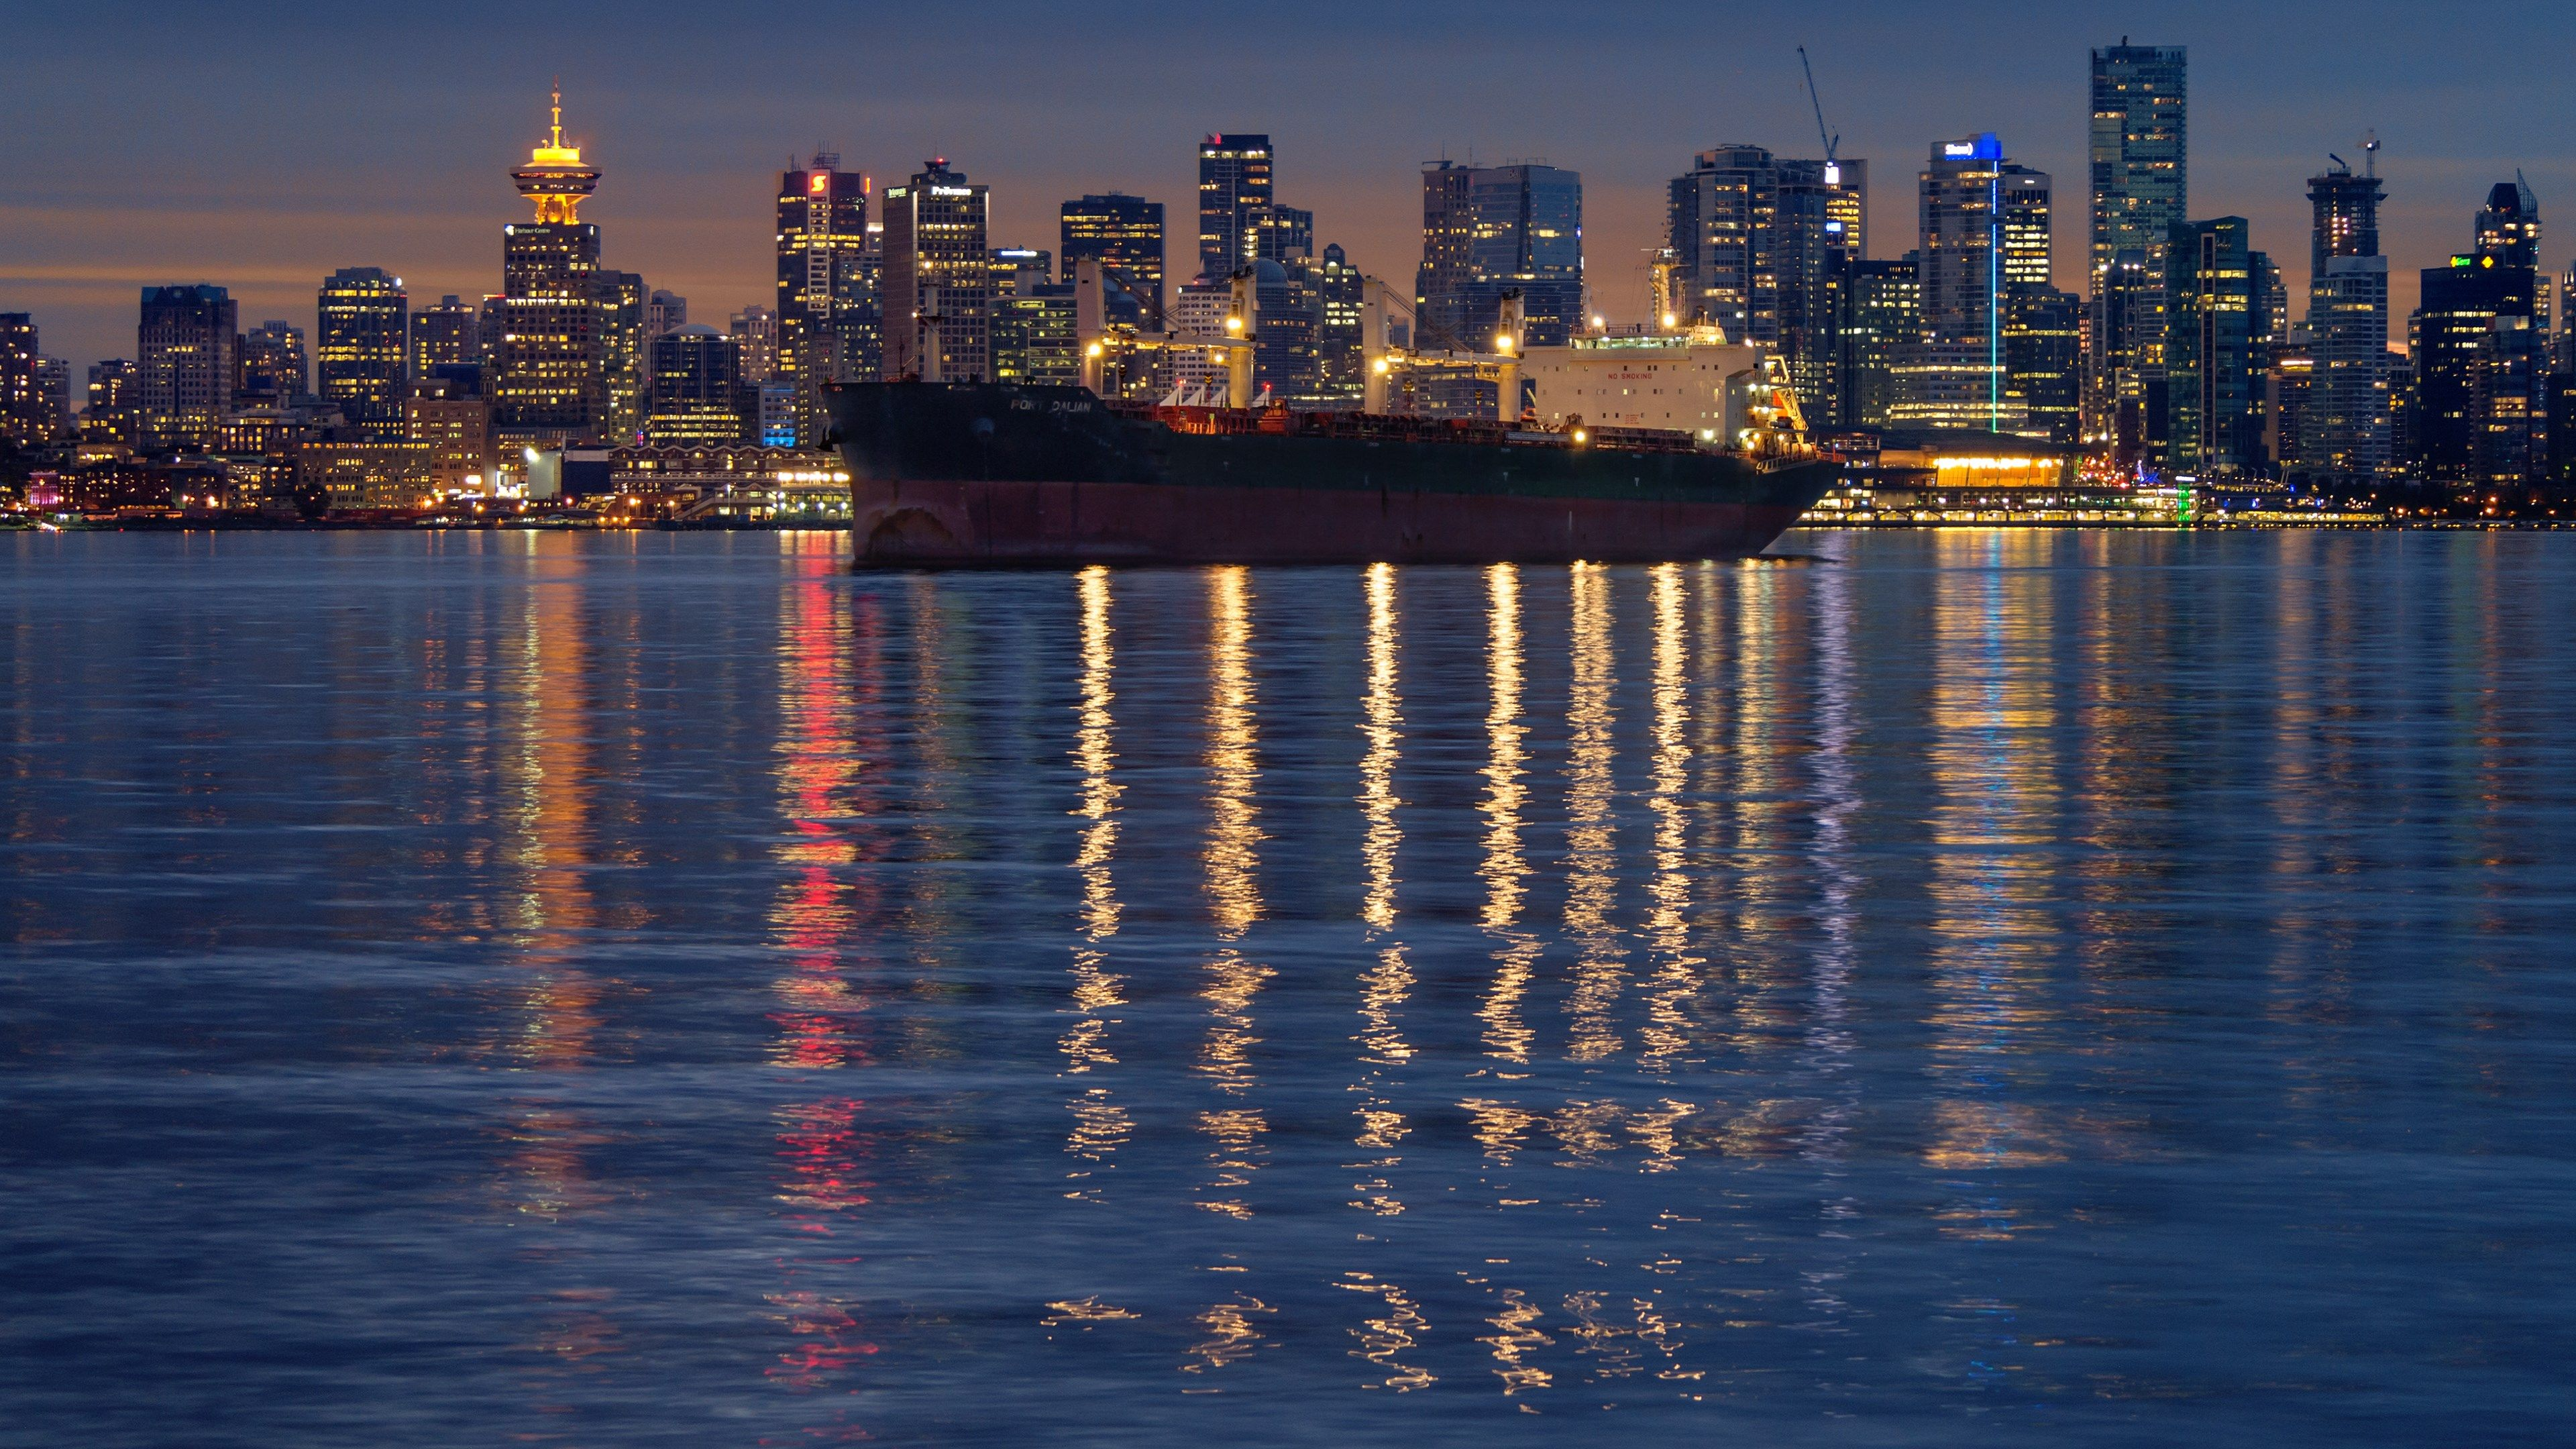 4k Best Photos For Wallpaper 3840x2160 City Lights At Night Downtown Vancouver Wallpaper